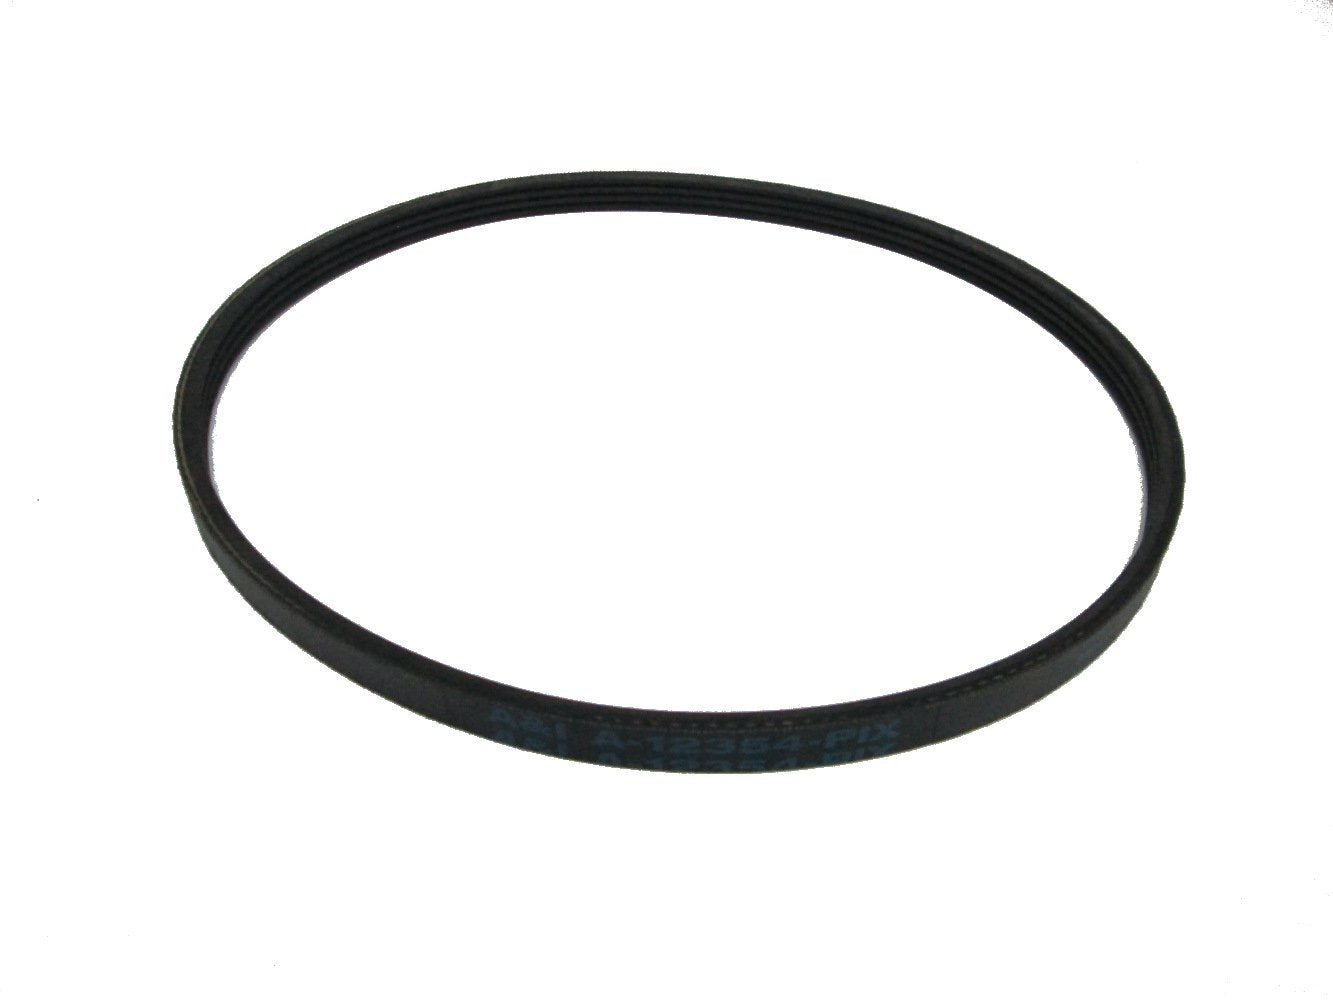 Replacement Drive Belt gor Snapper #12354 - A-12354